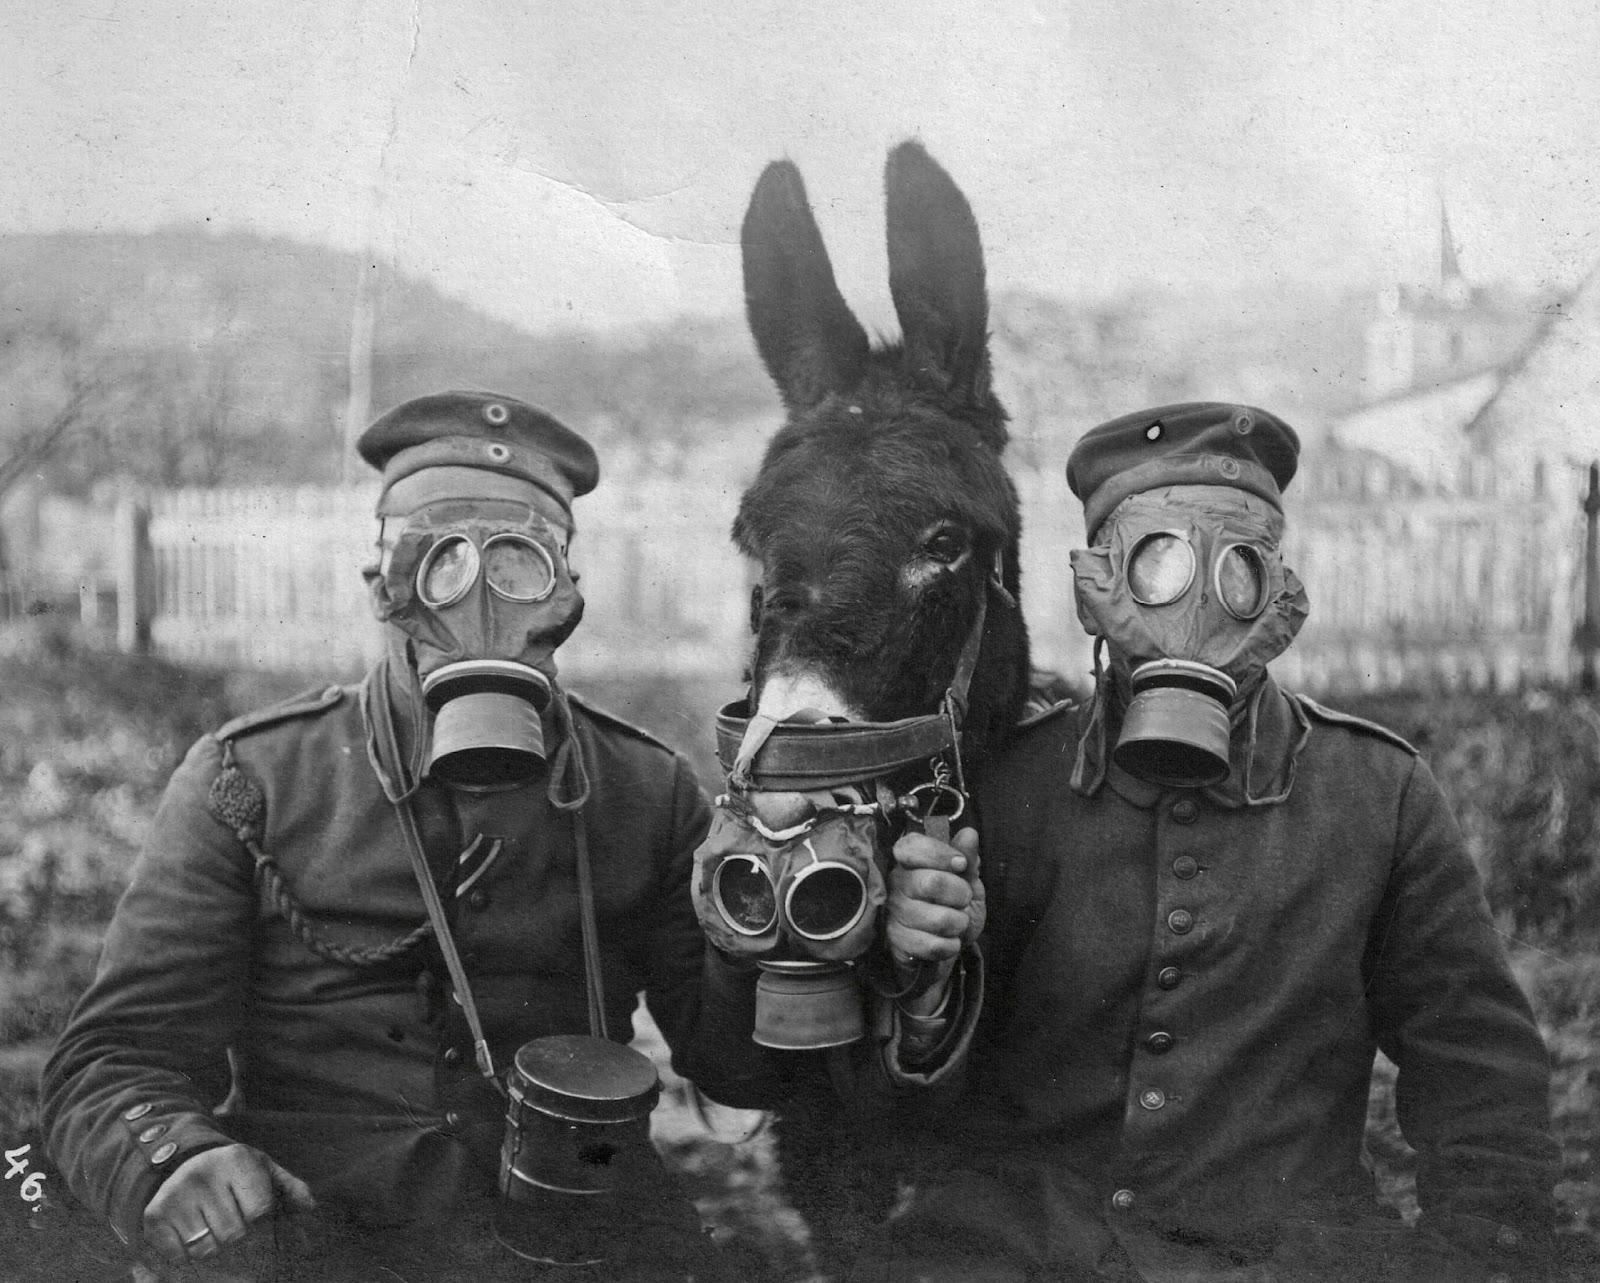 A group of guards wearing masks during a pandemic in the early 20th century. It is assumed to be during the Spanish flu pandemic